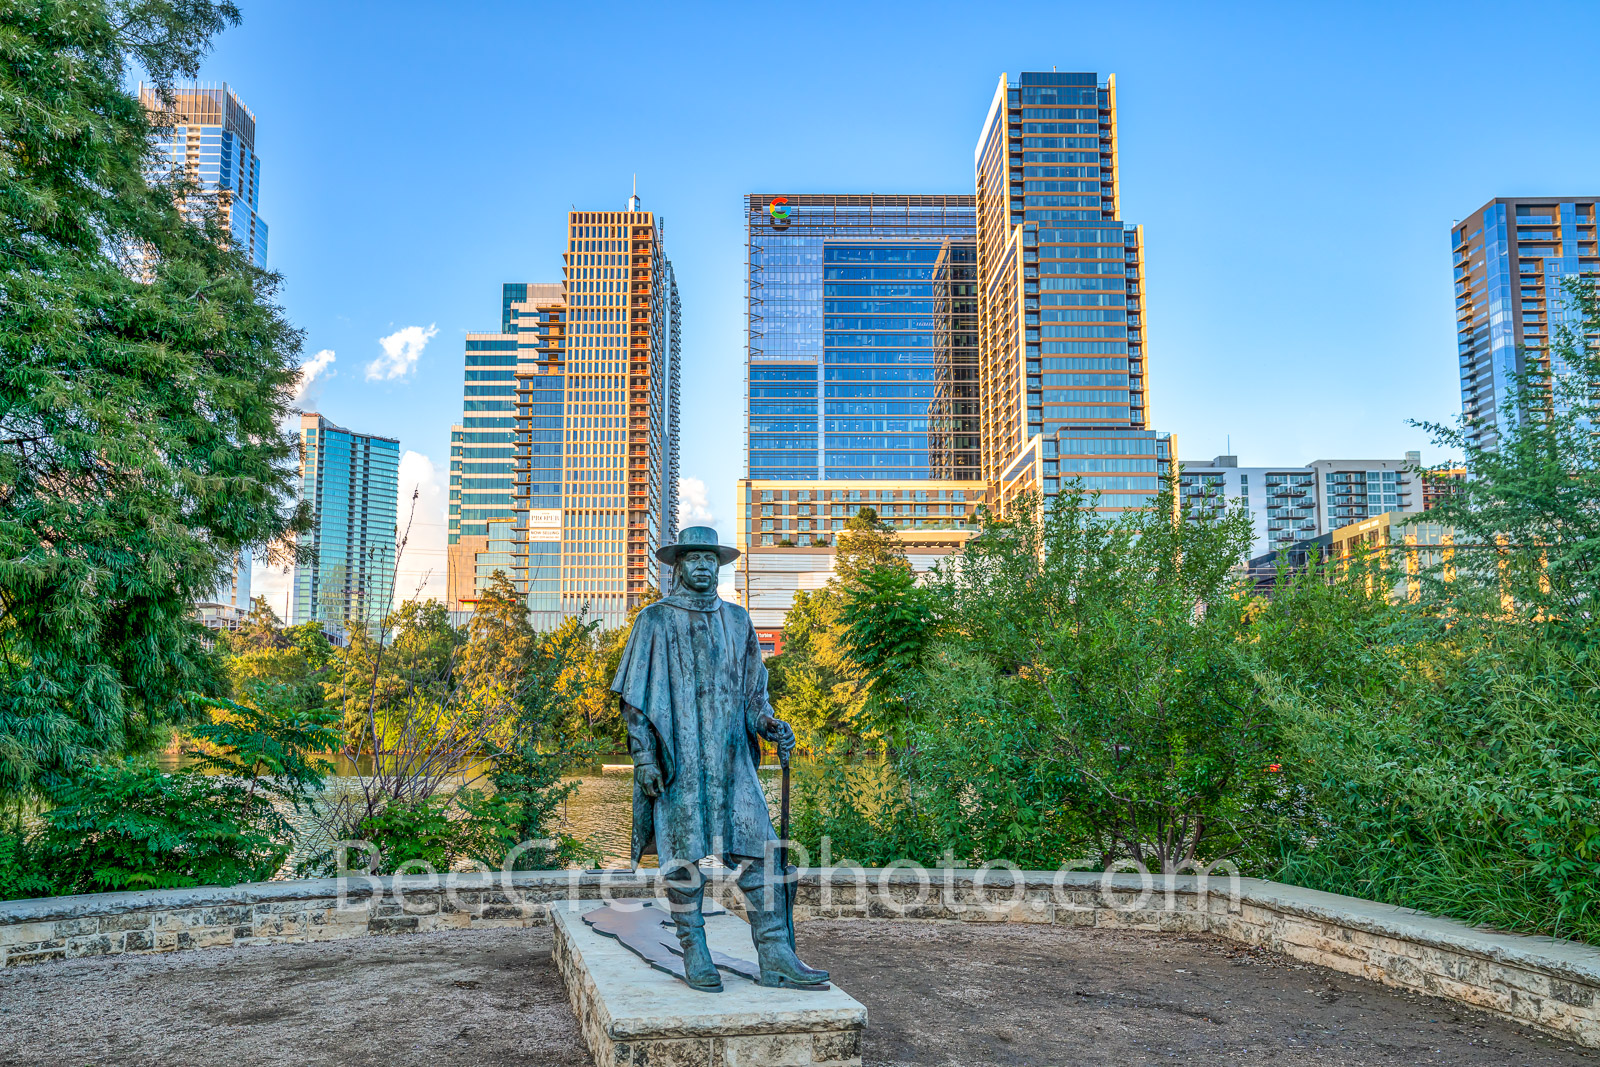 austin, skyline, Independent, Jingle, Stevie Ray Vaughan, statue, bronze, cityscape, Google, downtown, city, lady bird lake, town lake, downtown, blues, rock and roll hall of fame, music,musician,, photo